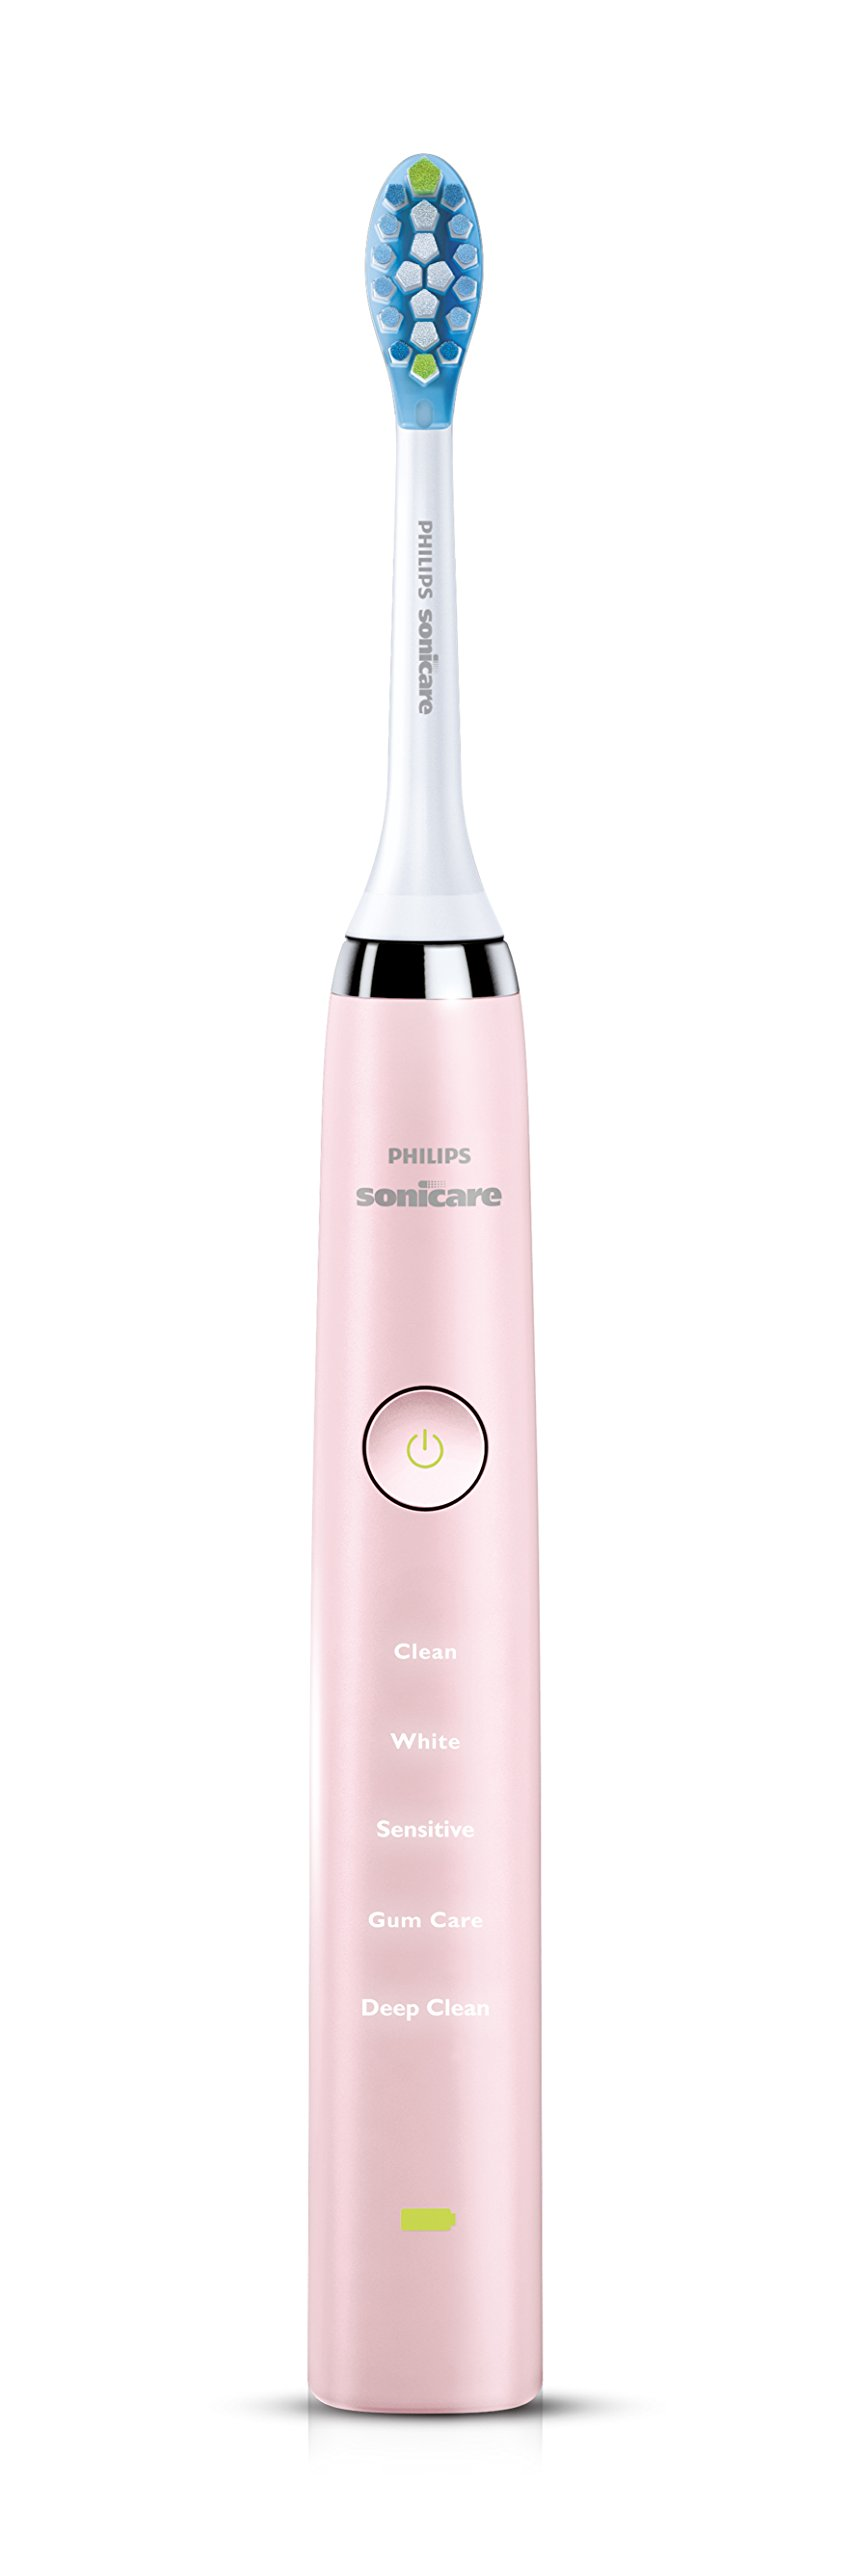 Philips Sonicare Diamond Clean Rechargeable Toothbrush w/Deep Clean Mode with Adaptive Clean Brush Head, Pink by Philips Sonicare (Image #2)